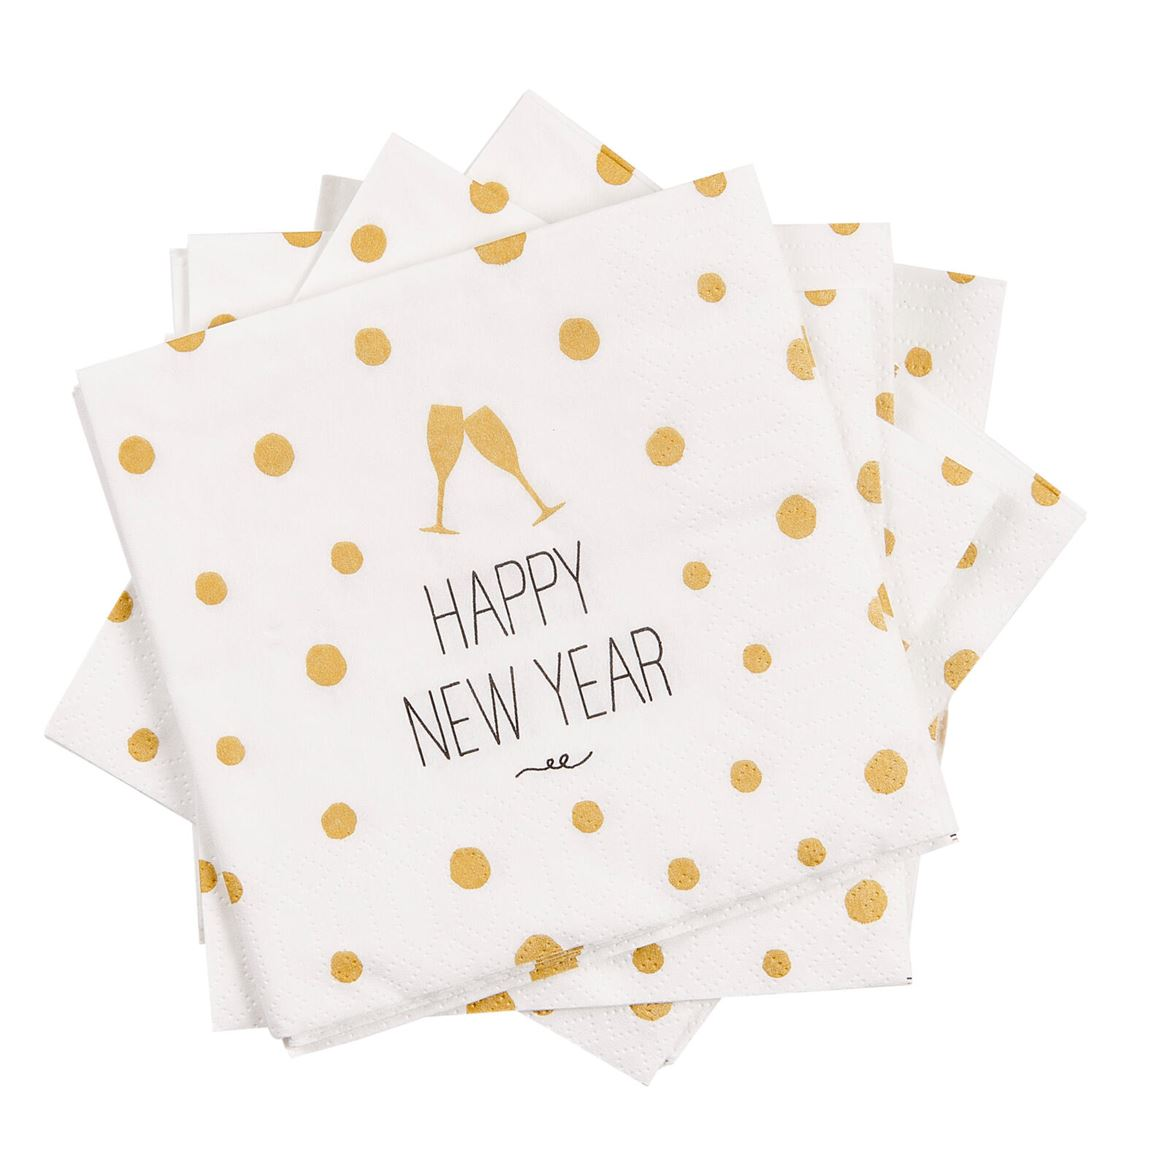 NEW YEAR Set de 20 serviettes blanc Larg. 25 x Long. 25 cm_new-year-set-de-20-serviettes-blanc-larg--25-x-long--25-cm